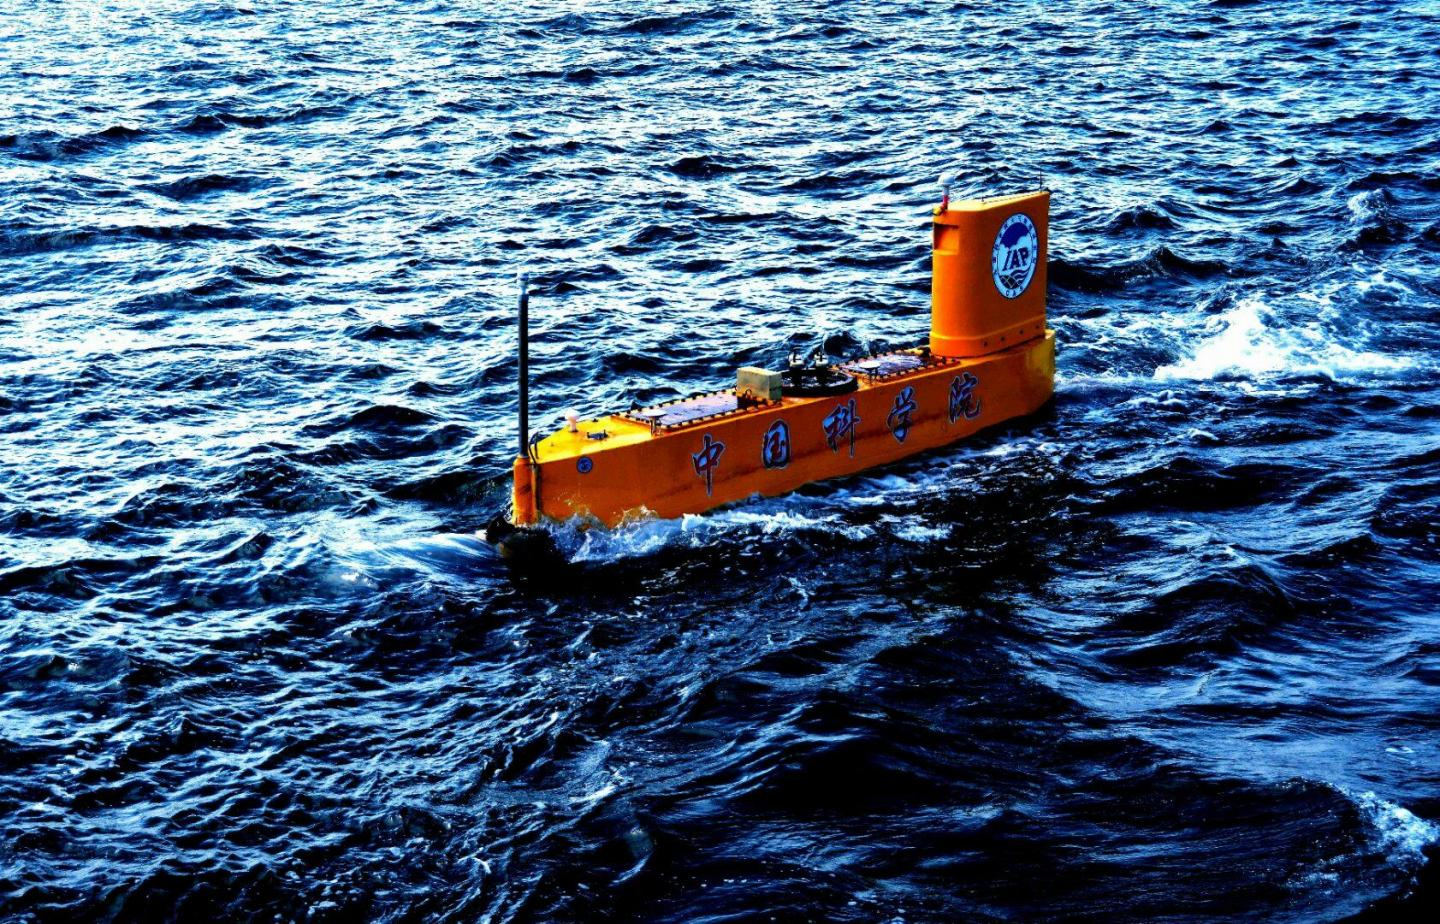 Unmanned Semi-Submersible Vehicle